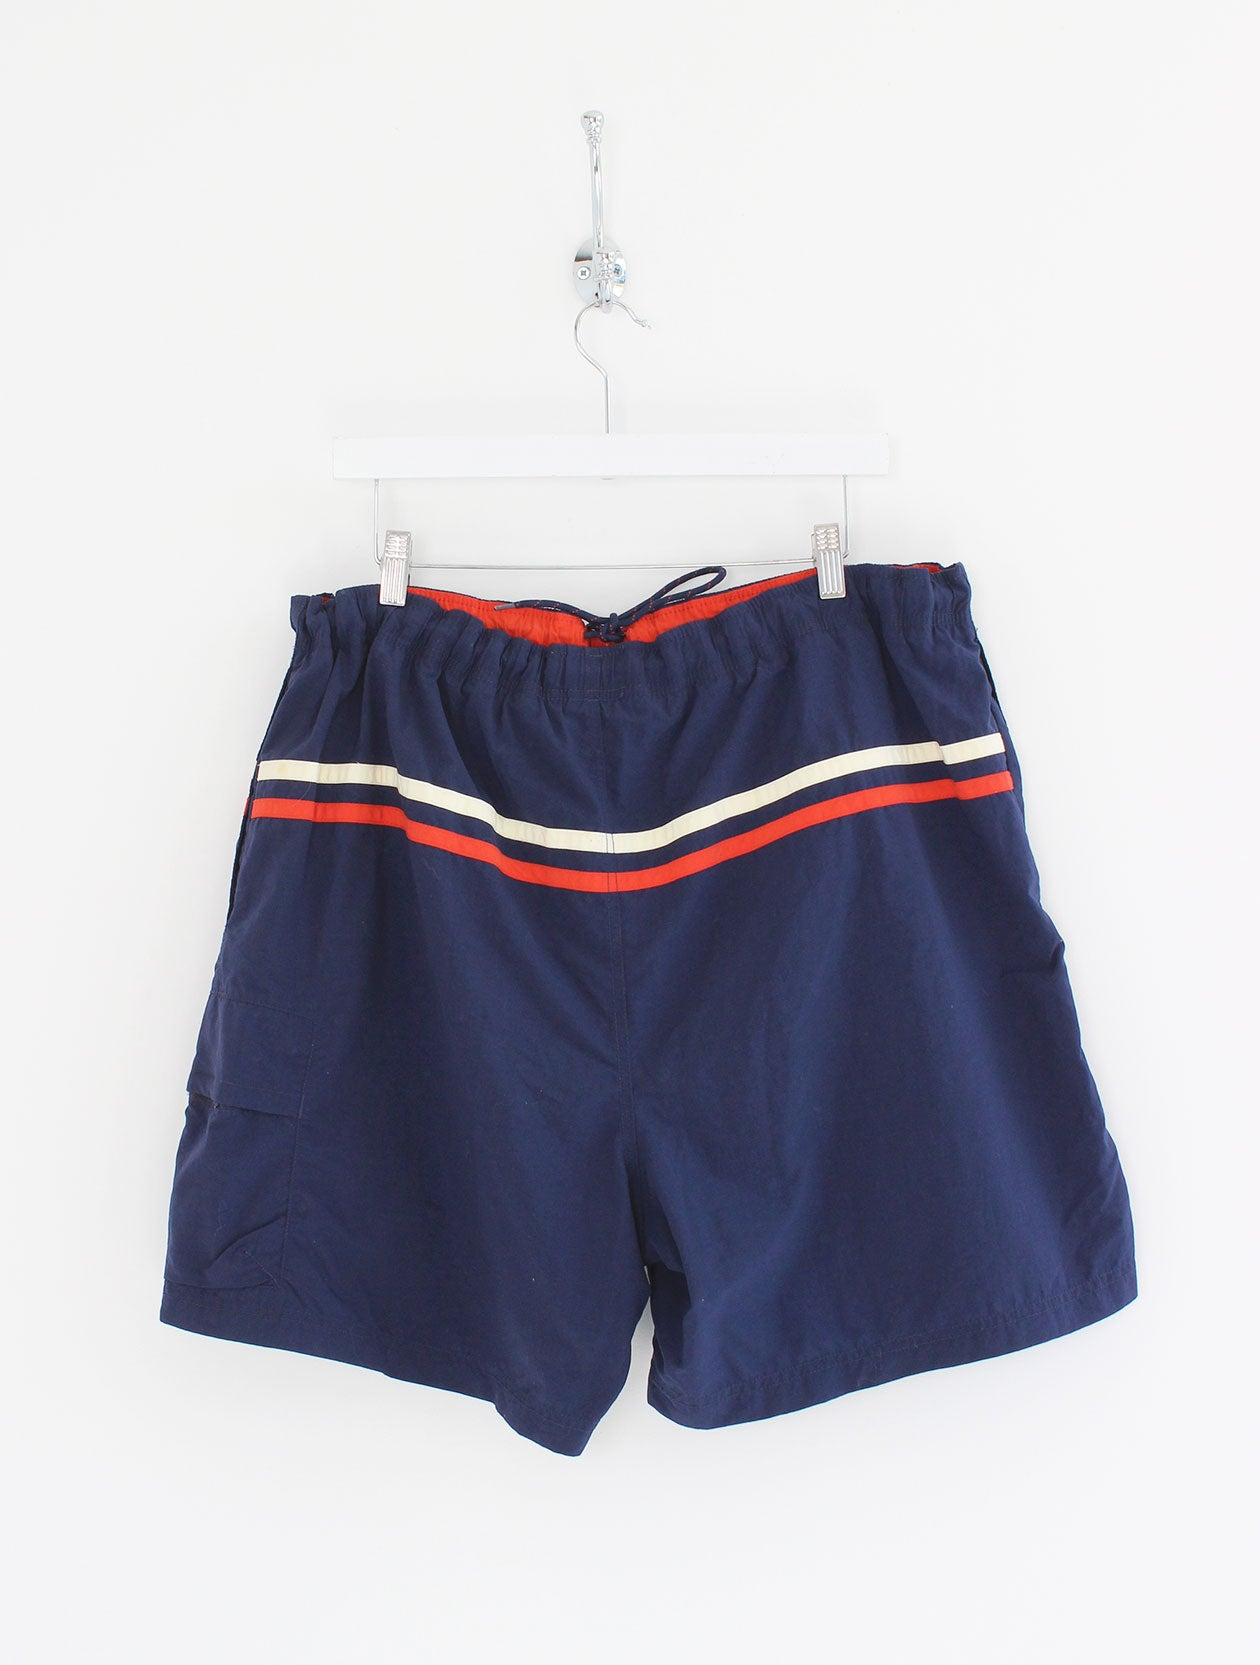 Nautica Swim Shorts (XL)